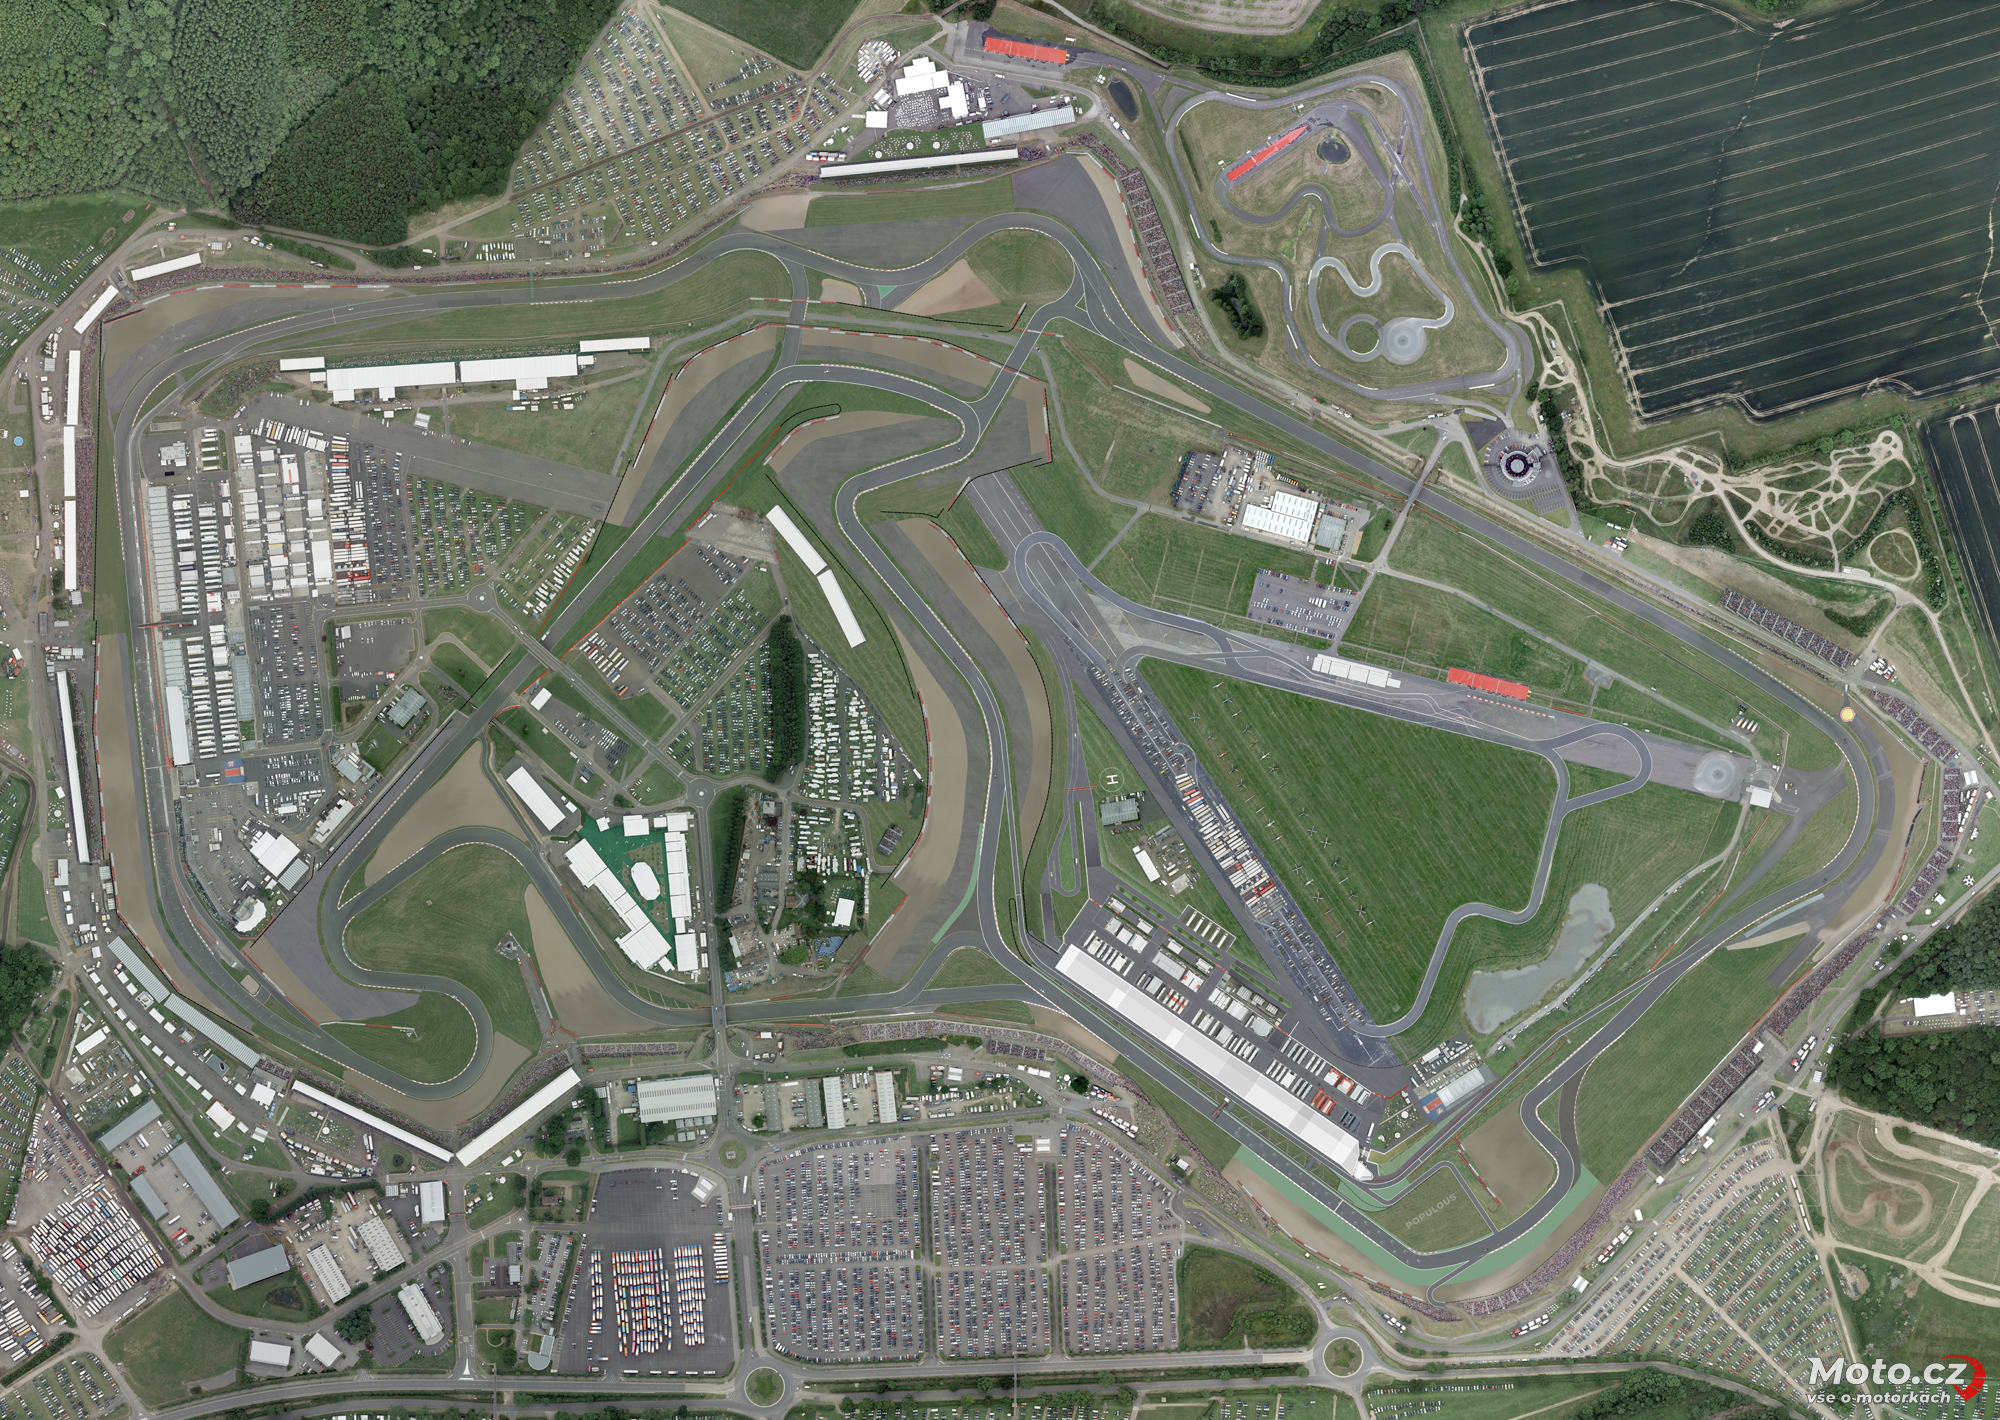 013 - Silverstone Arena Circuit